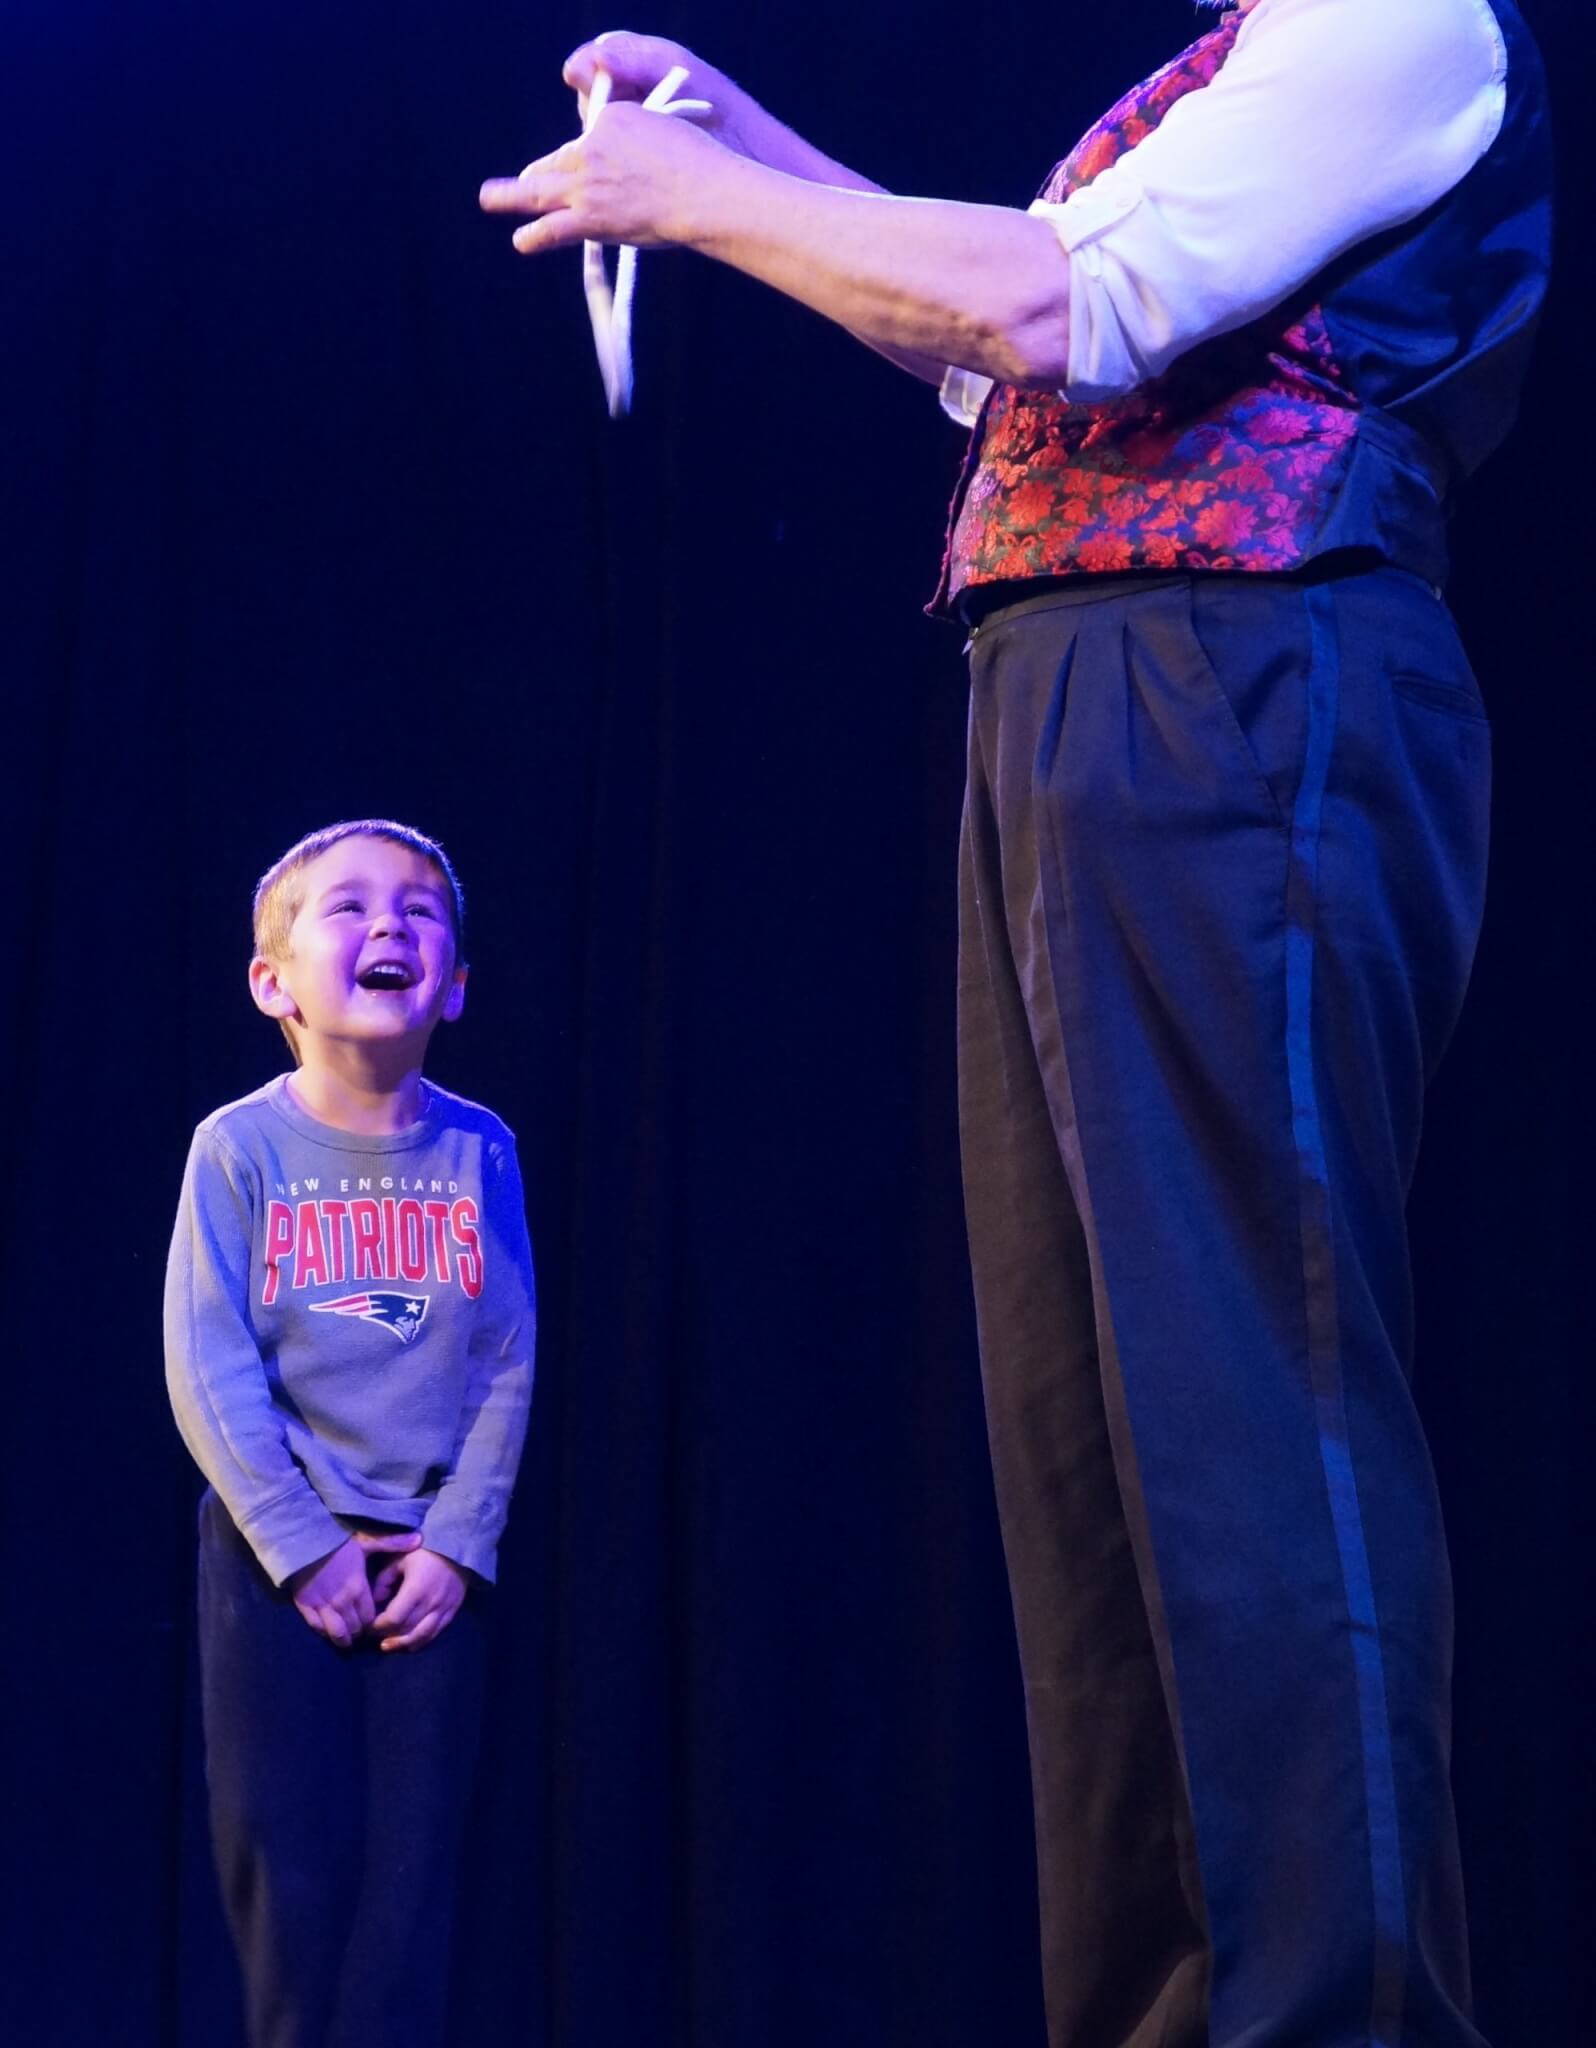 Child looking up at magician Stephanie Beach in amazement.